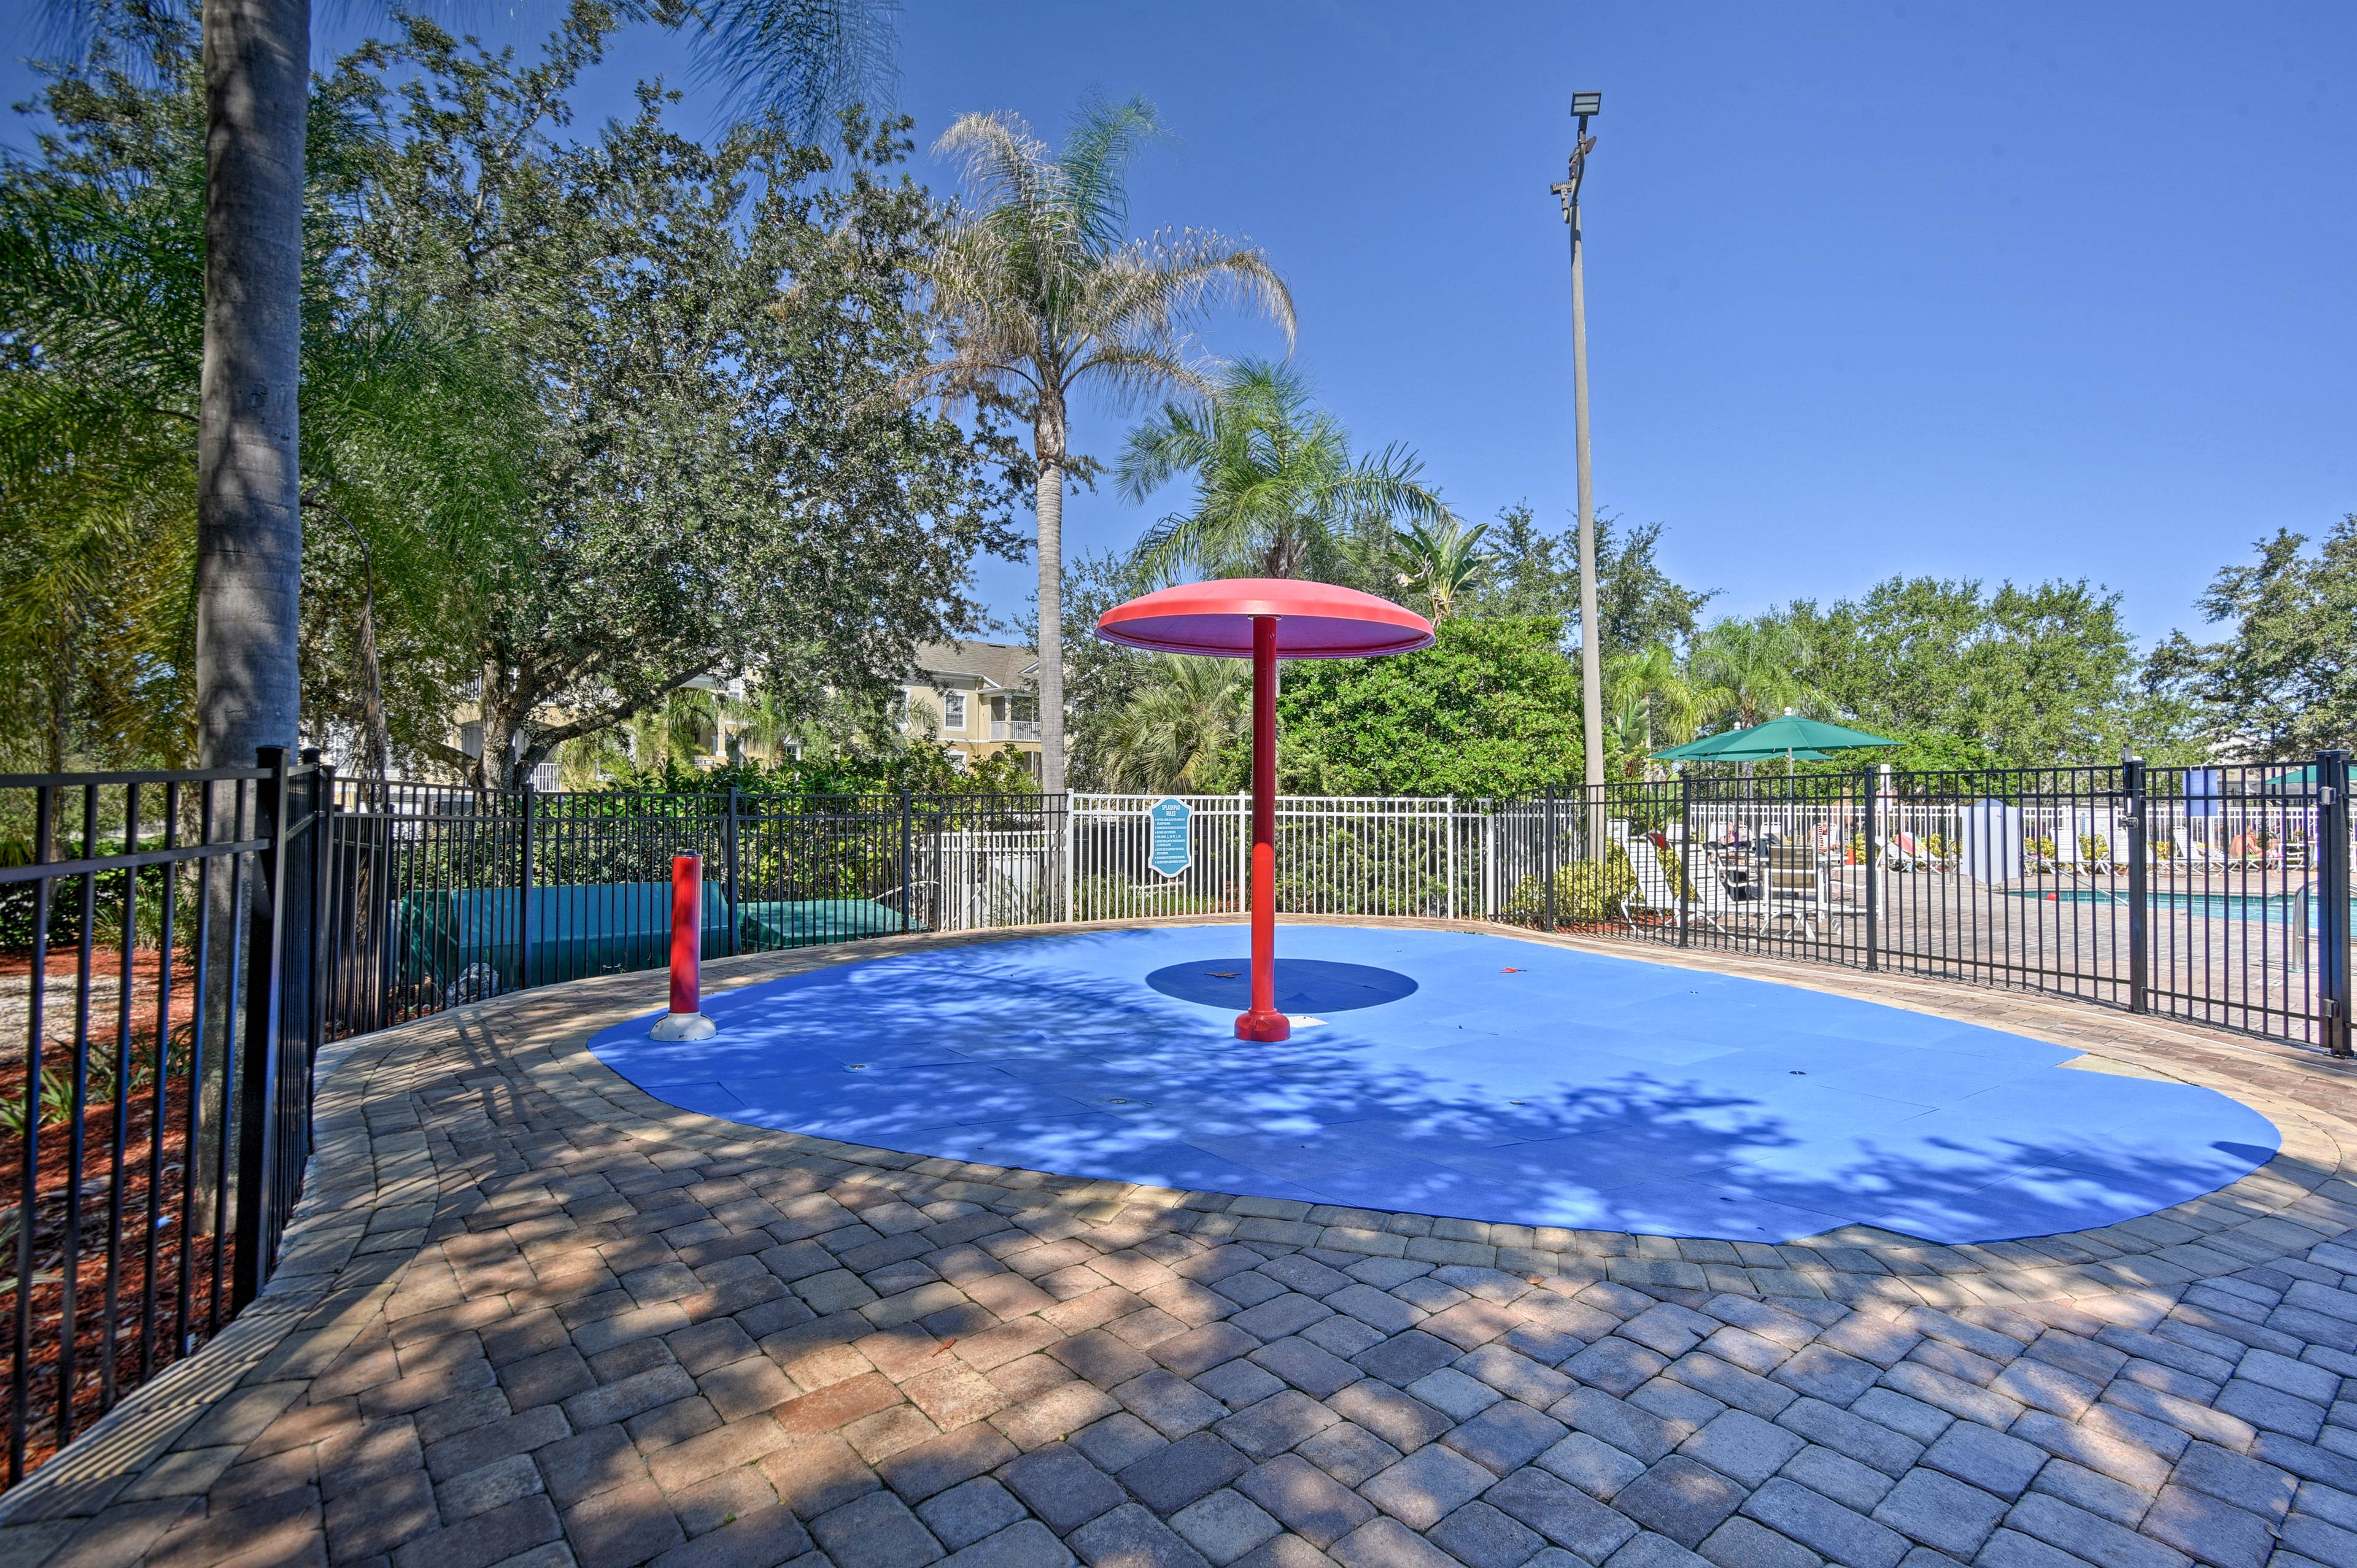 The little ones will love this splashpad.